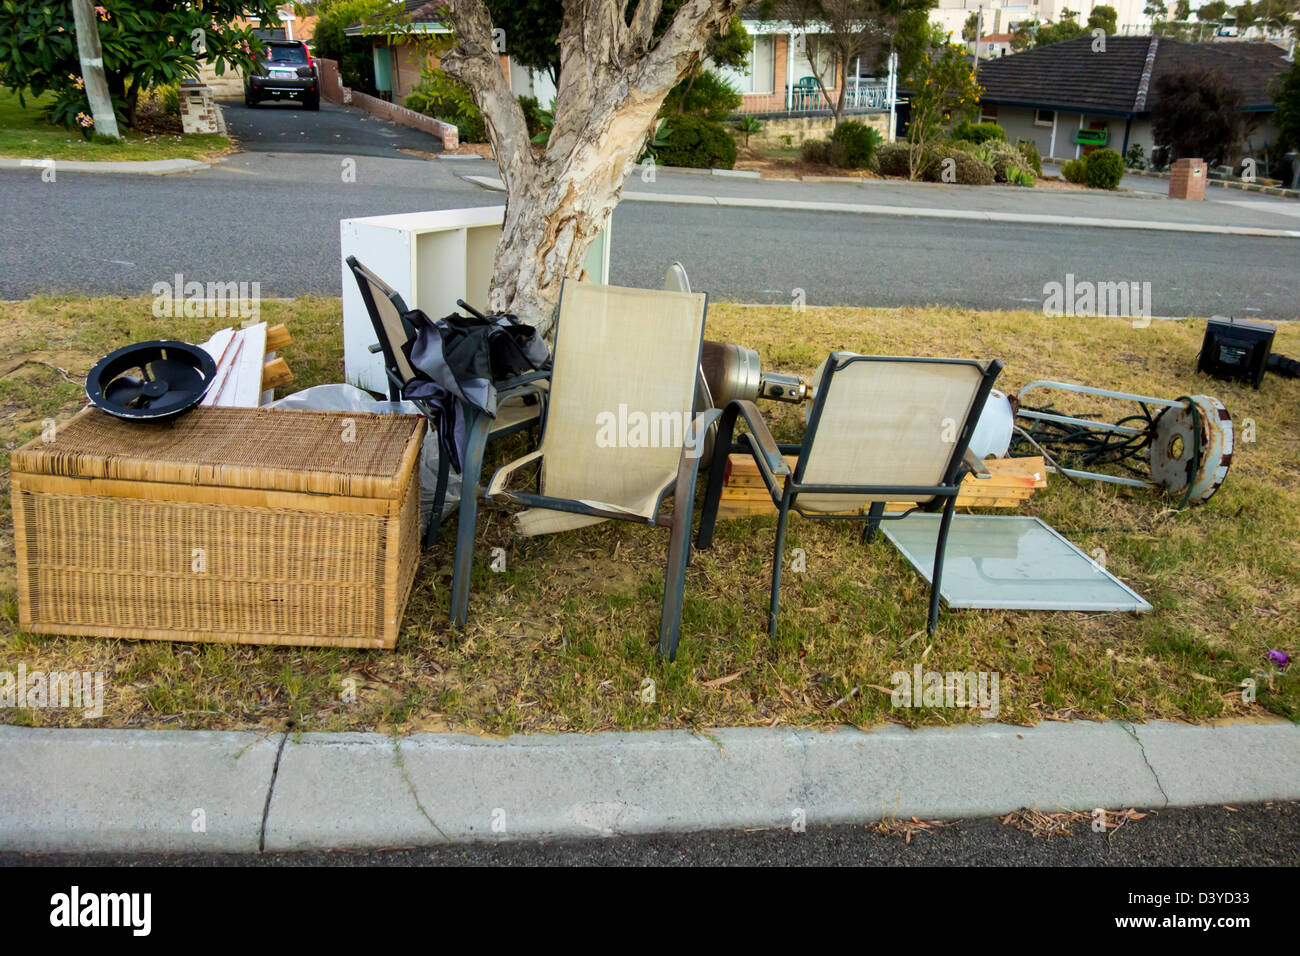 House junk ready to be collected on verge - Stock Image